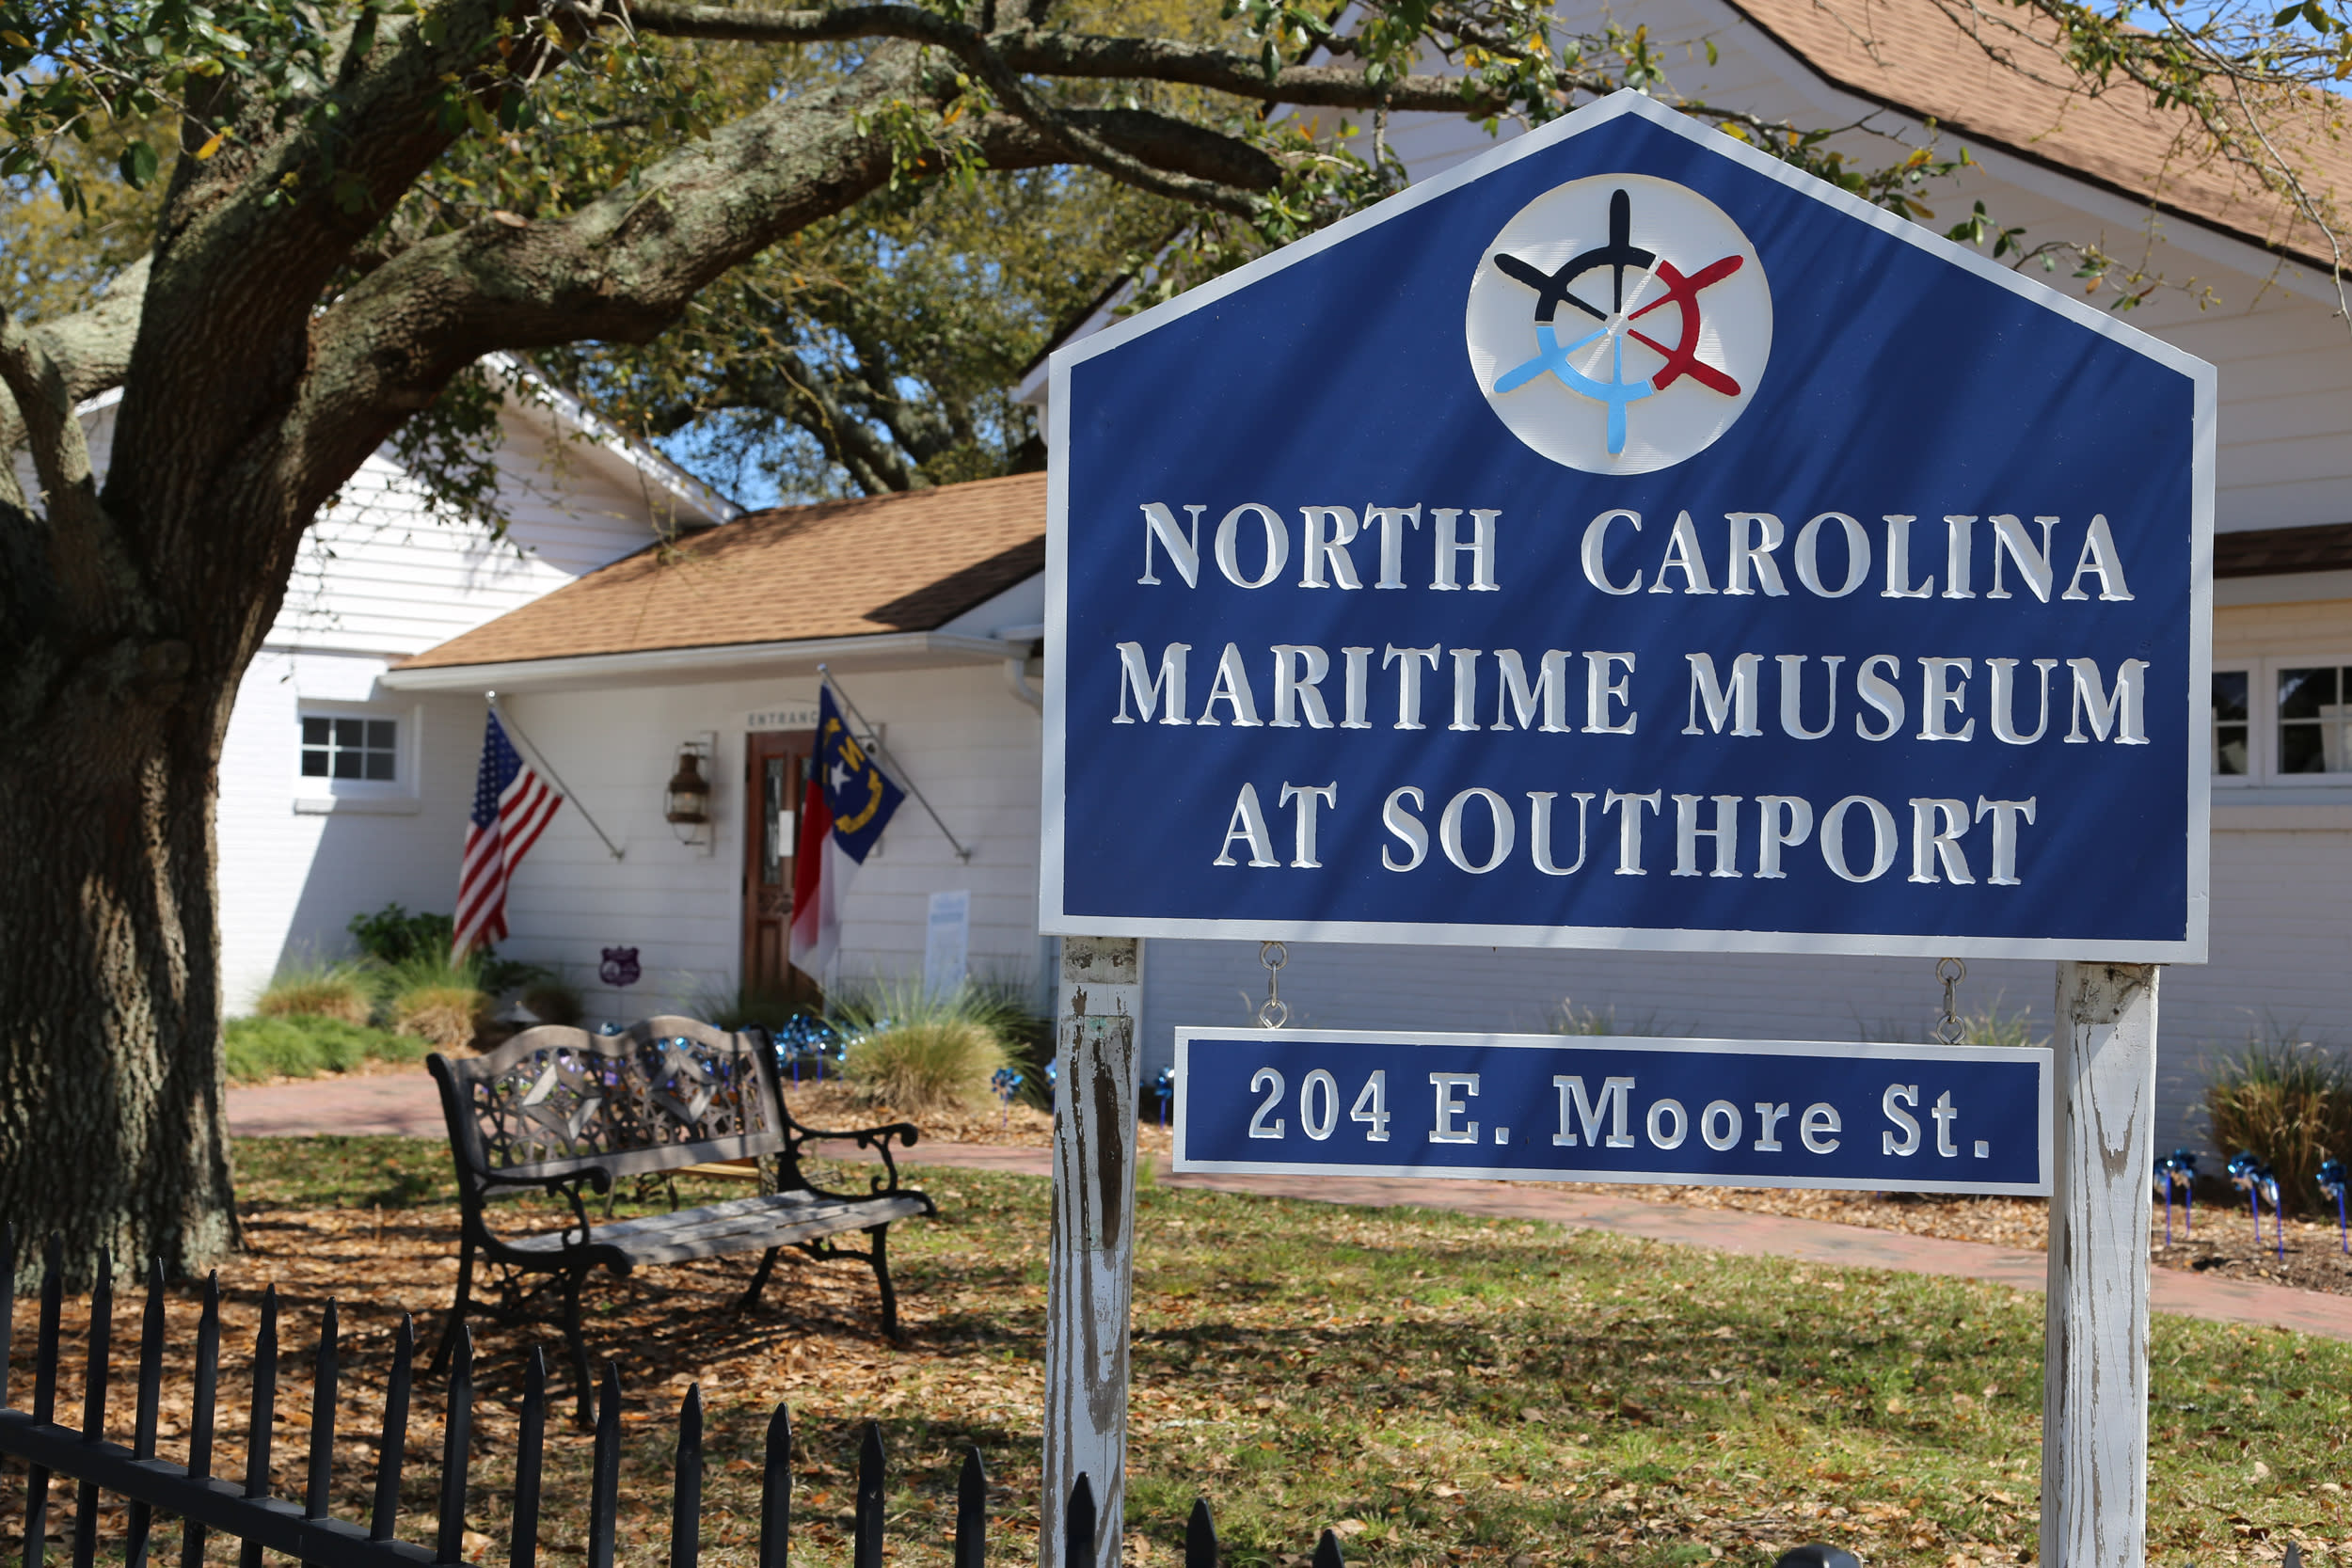 NC Maritime Museum in Southport